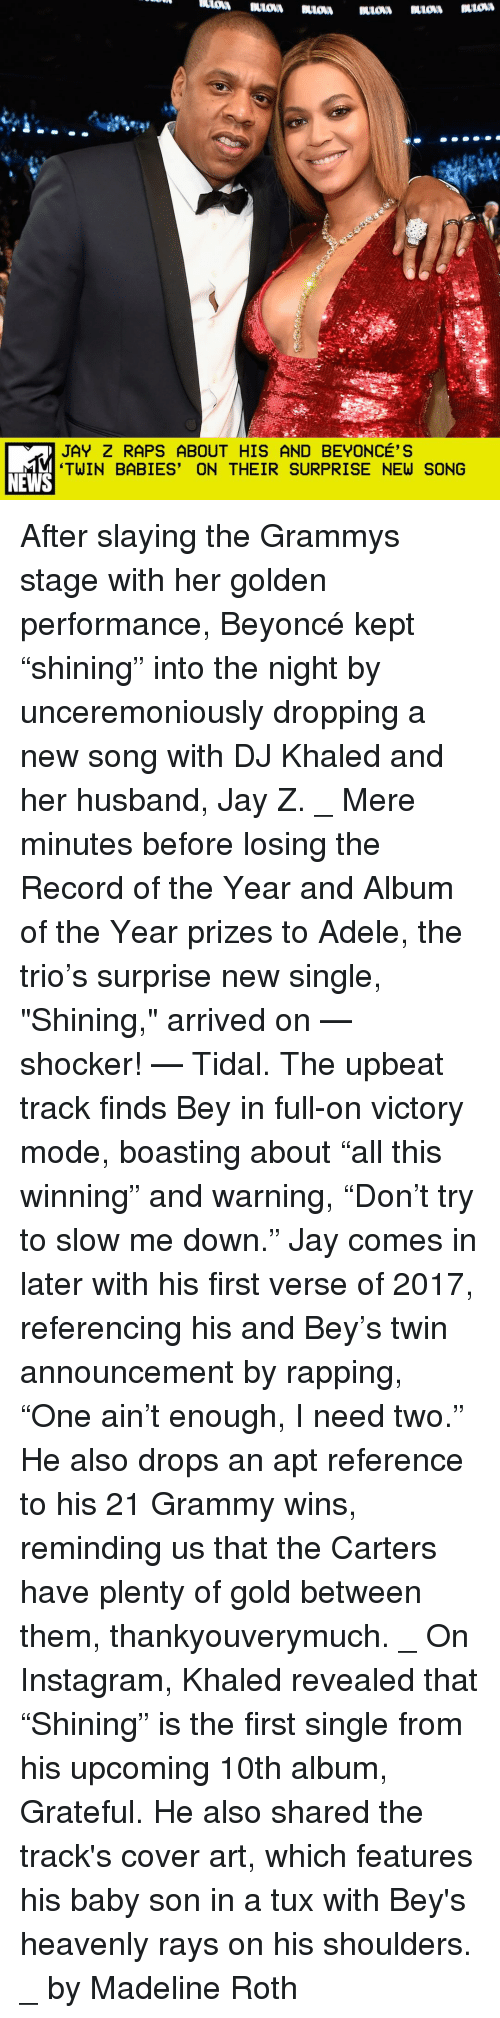 "DJ Khaled, Memes, and Tidal: JAY Z RAPS ABOUT HIS AND BEYONCE'S  TWIN BABIES' ON THEIR SURPRISE NEW SONG  NEWS After slaying the Grammys stage with her golden performance, Beyoncé kept ""shining"" into the night by unceremoniously dropping a new song with DJ Khaled and her husband, Jay Z. _ Mere minutes before losing the Record of the Year and Album of the Year prizes to Adele, the trio's surprise new single, ""Shining,"" arrived on — shocker! — Tidal. The upbeat track finds Bey in full-on victory mode, boasting about ""all this winning"" and warning, ""Don't try to slow me down."" Jay comes in later with his first verse of 2017, referencing his and Bey's twin announcement by rapping, ""One ain't enough, I need two."" He also drops an apt reference to his 21 Grammy wins, reminding us that the Carters have plenty of gold between them, thankyouverymuch. _ On Instagram, Khaled revealed that ""Shining"" is the first single from his upcoming 10th album, Grateful. He also shared the track's cover art, which features his baby son in a tux with Bey's heavenly rays on his shoulders. _ by Madeline Roth"